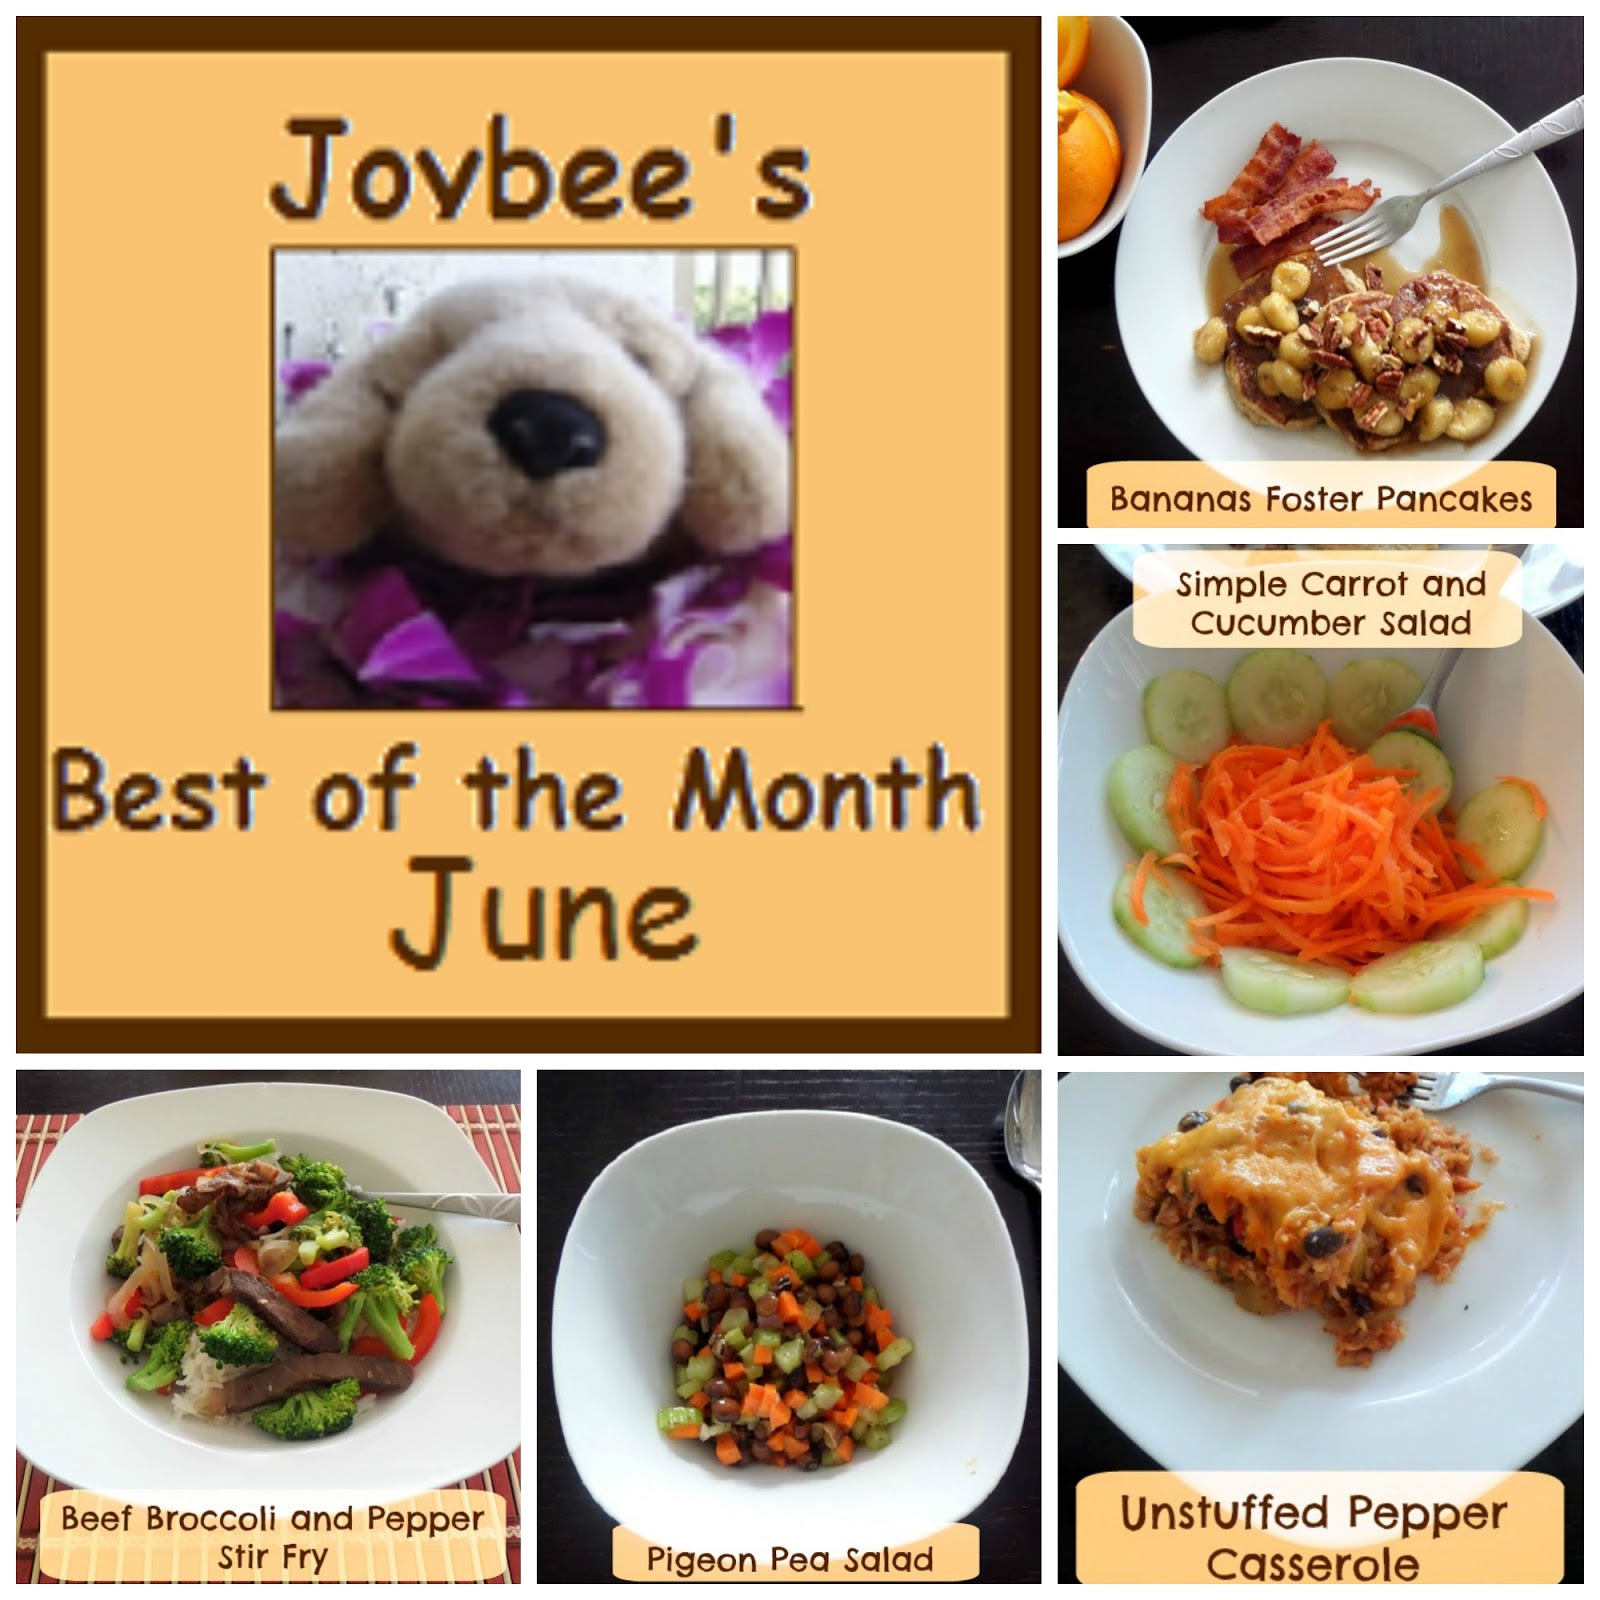 Joybee's Best of the Month June 2014:  A recap of my most popular recipes from last month (June 2014)